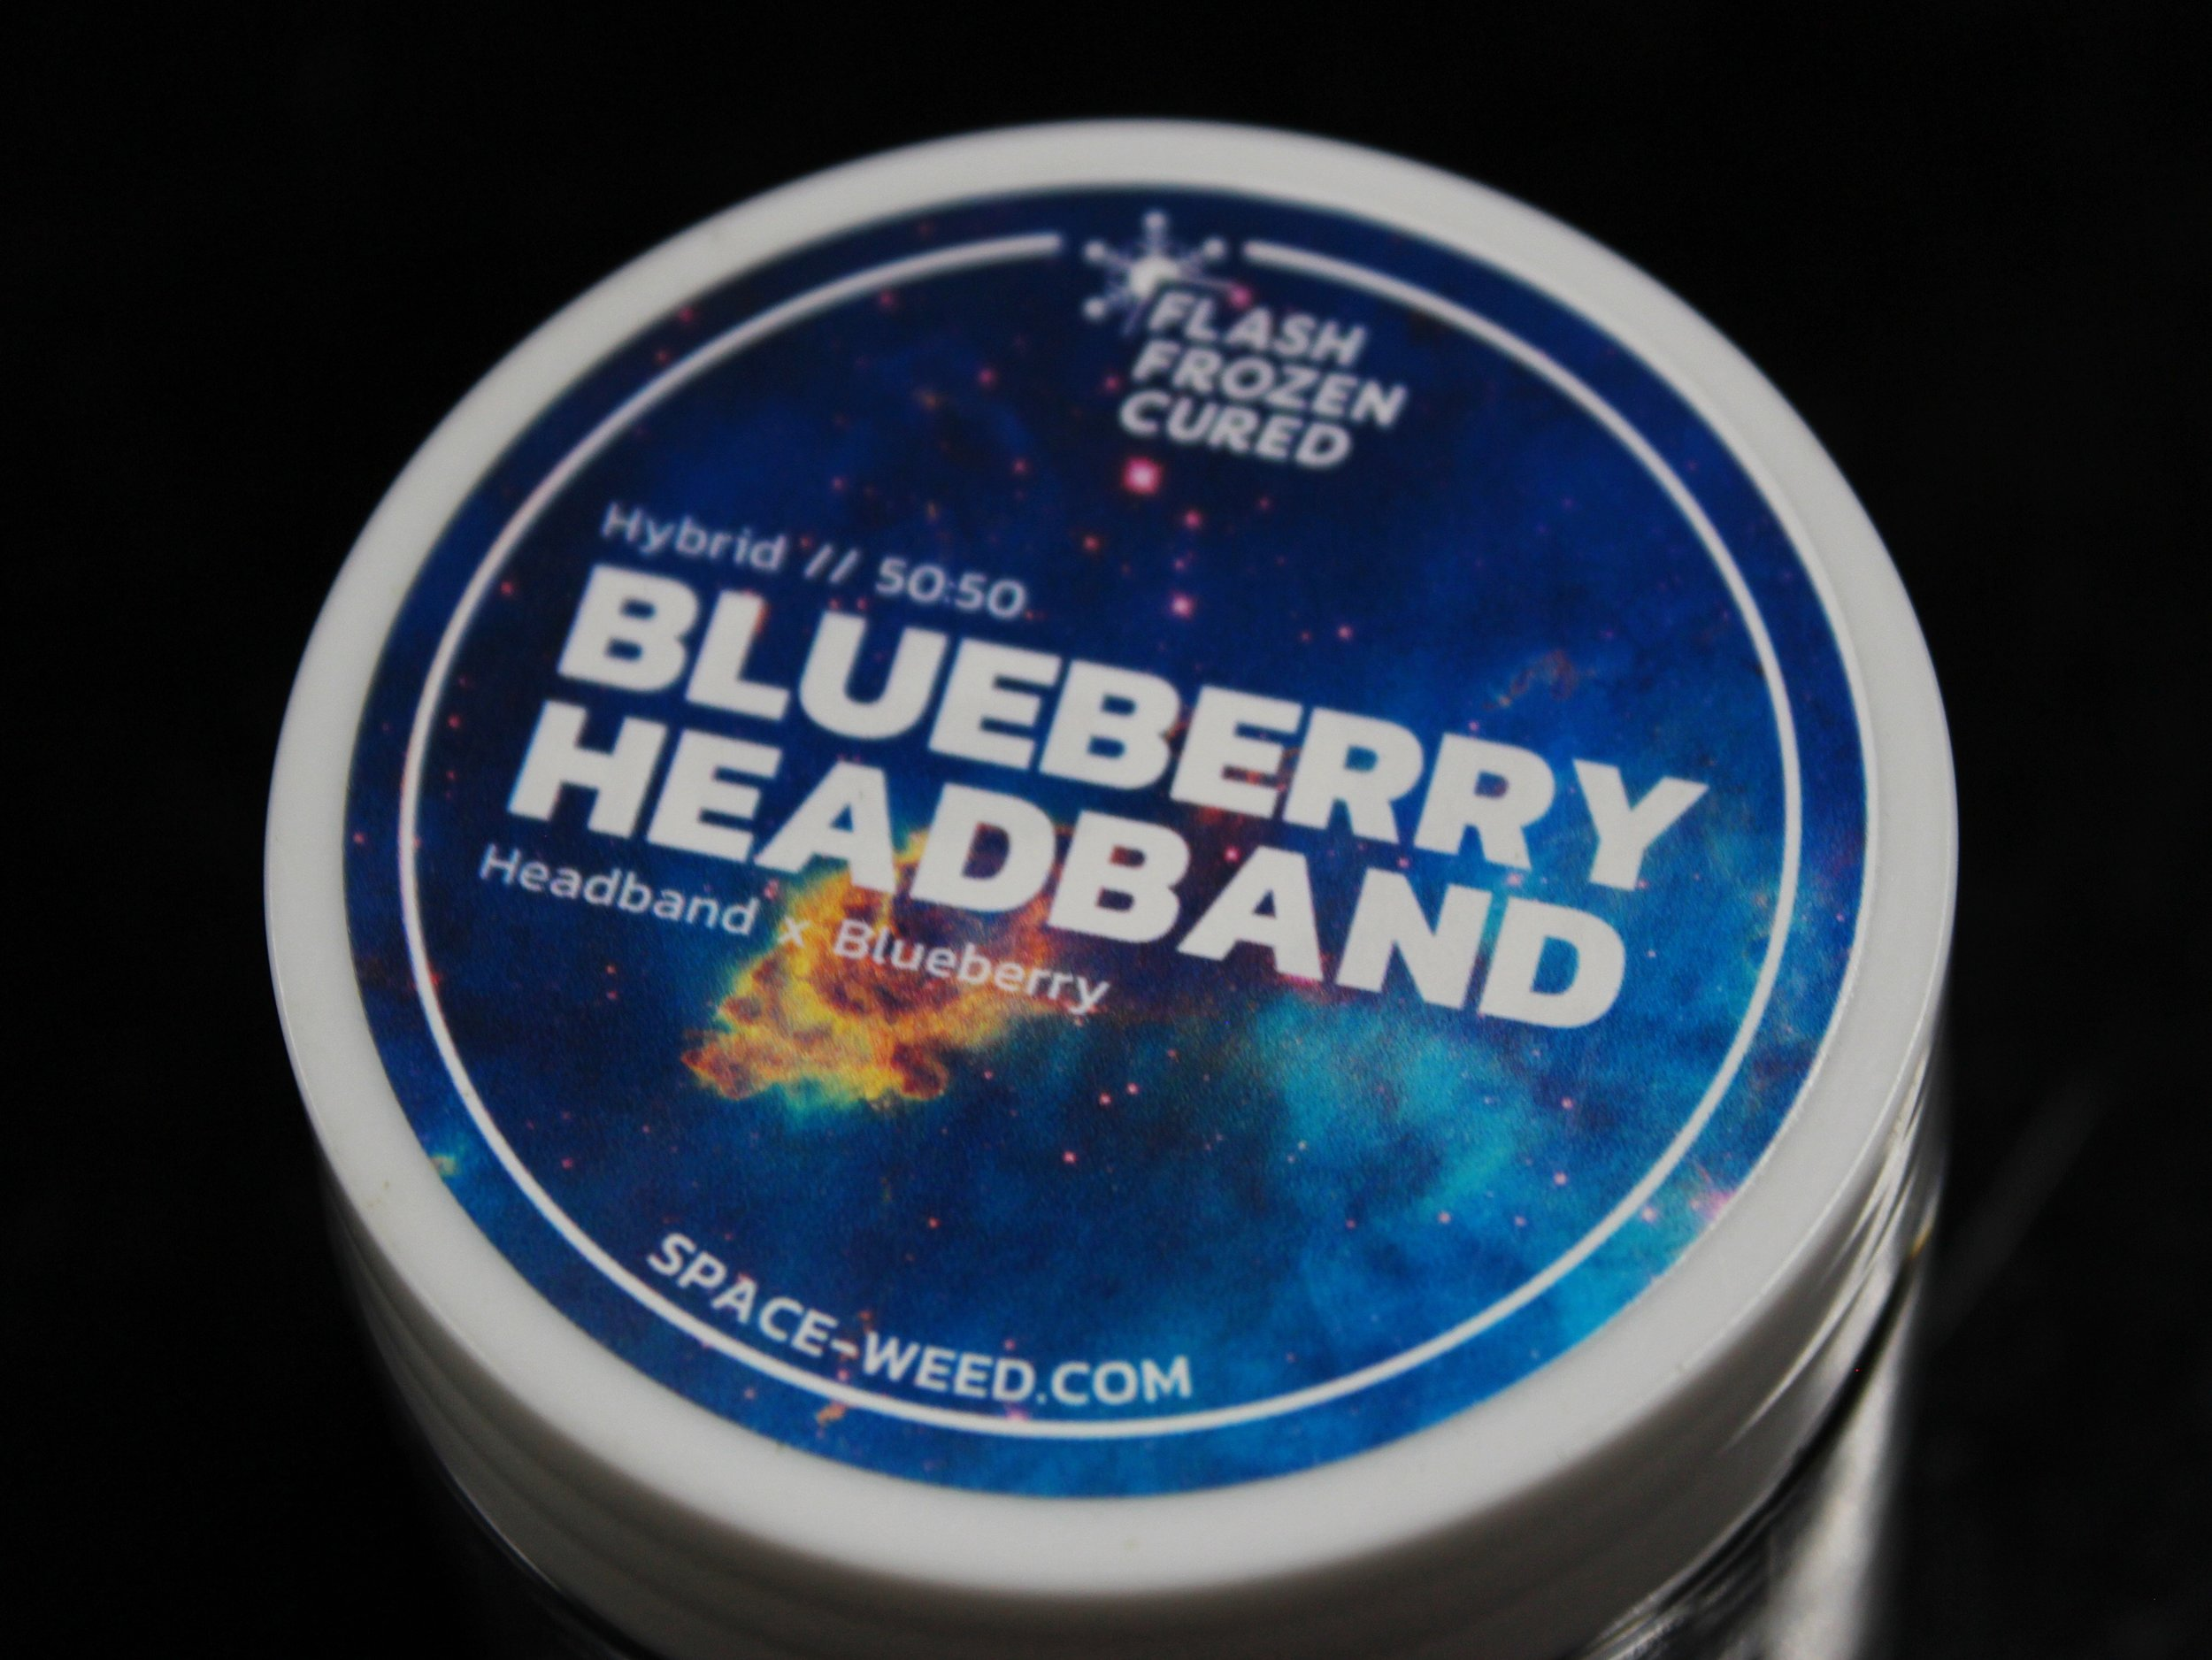 Blueberry-Headband-Space-Weed.JPG